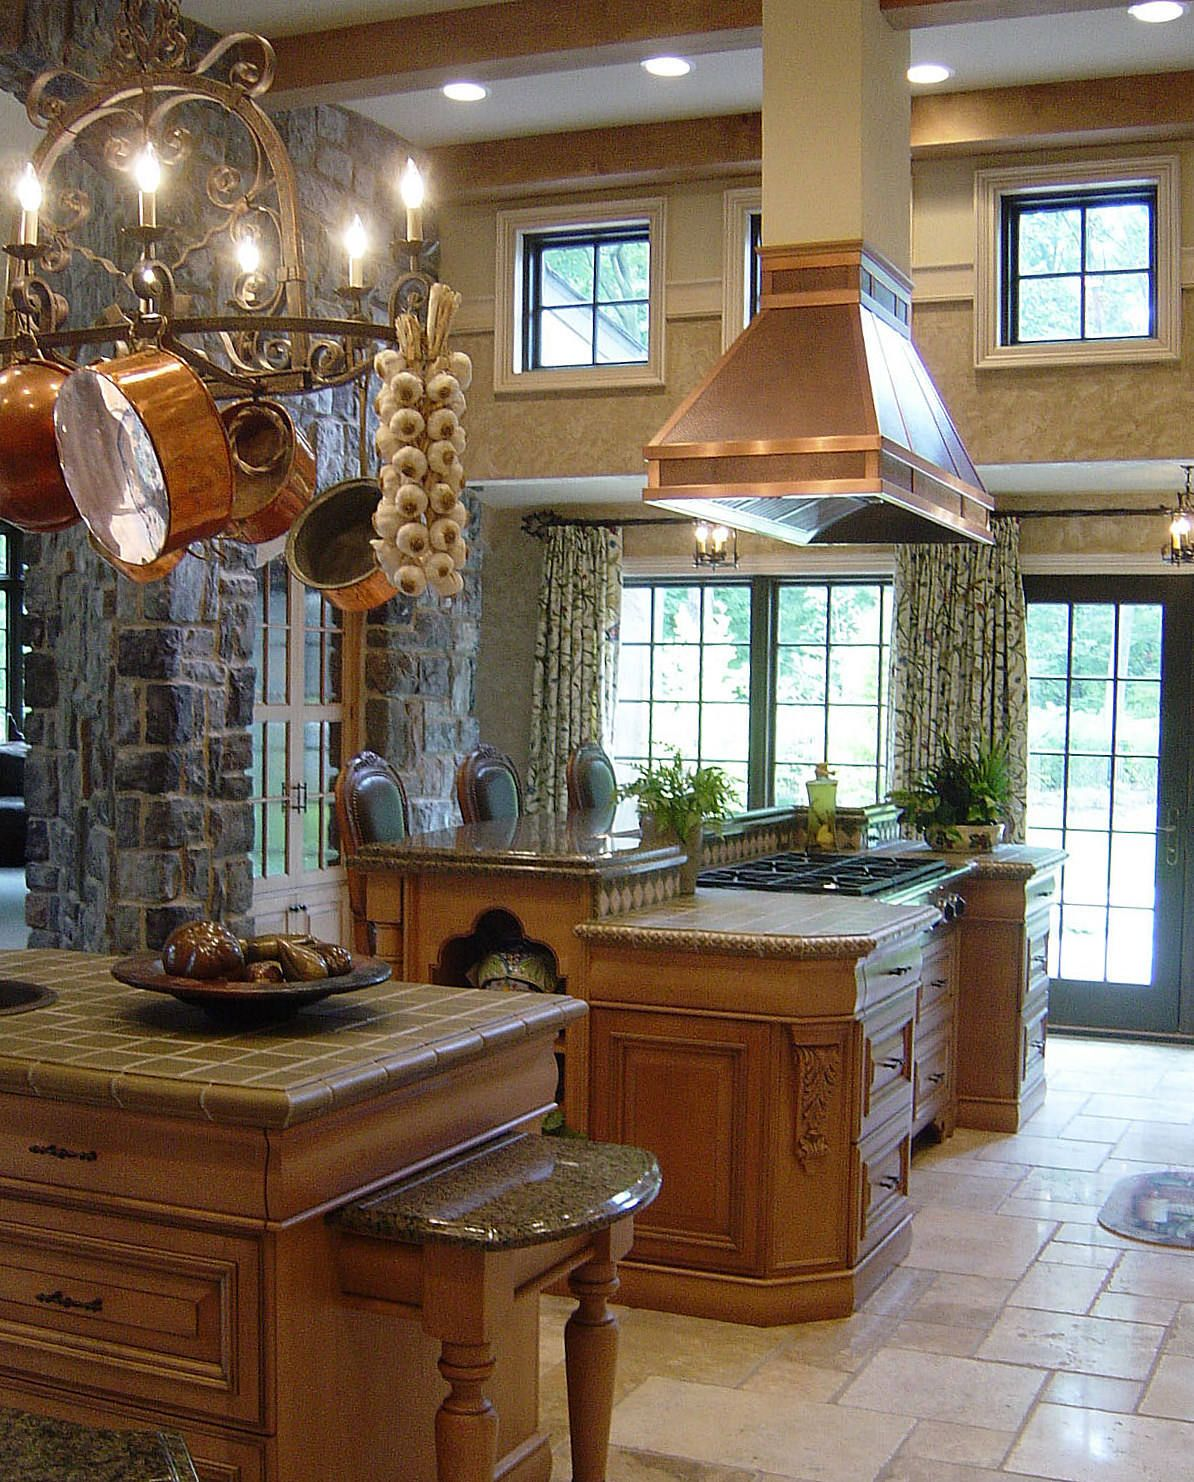 This custom kitchen by MinionGutierrez Design is the kind